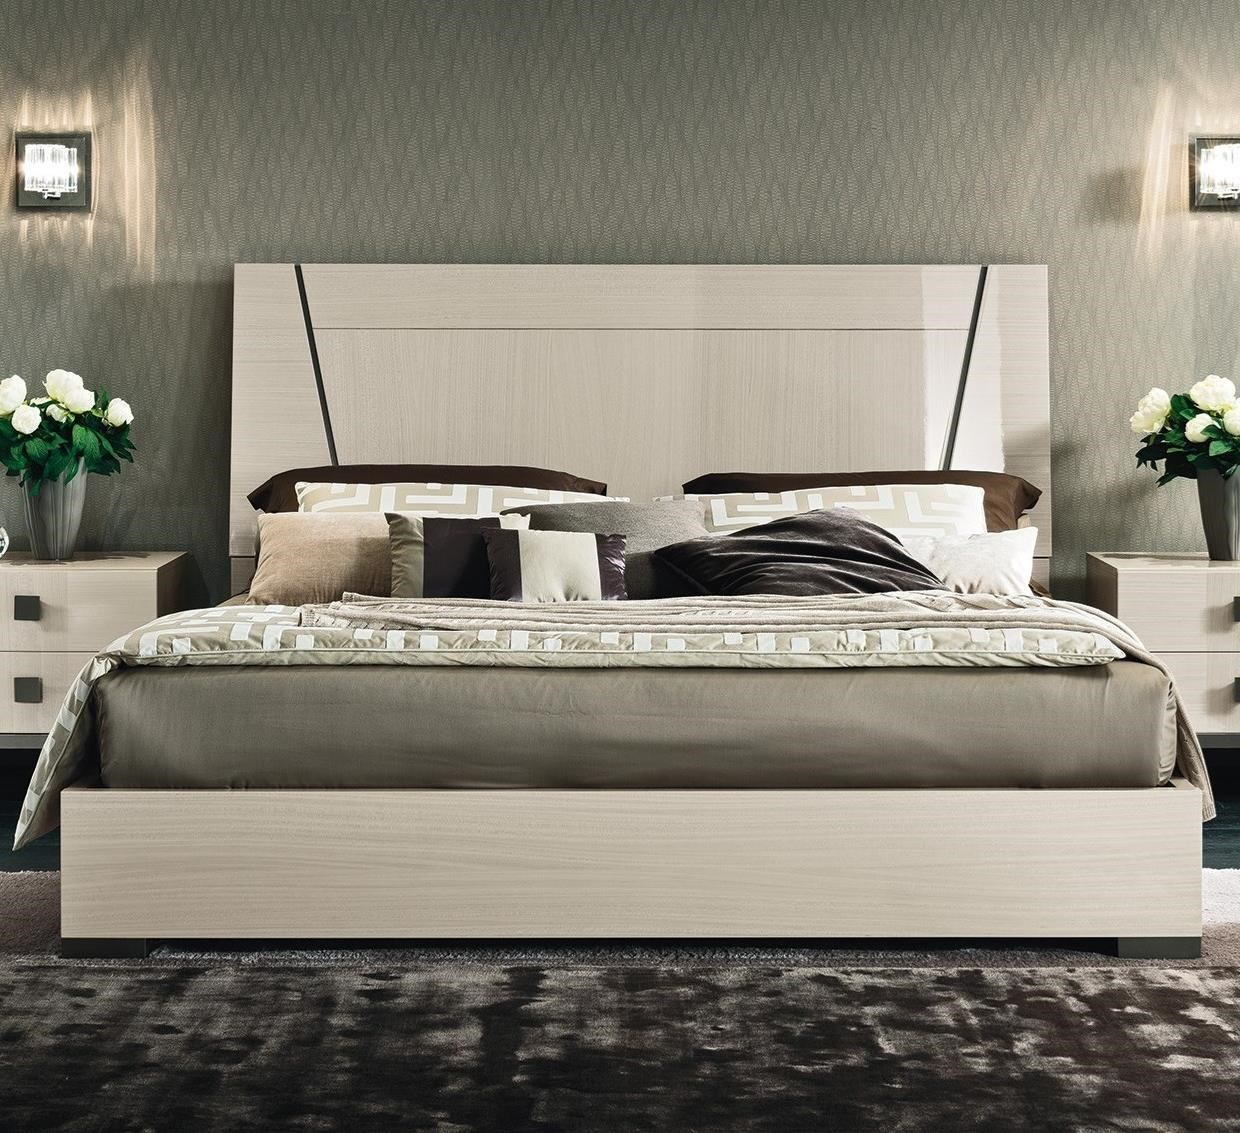 Alf italia mont blanc king low profile bed with wood headboard